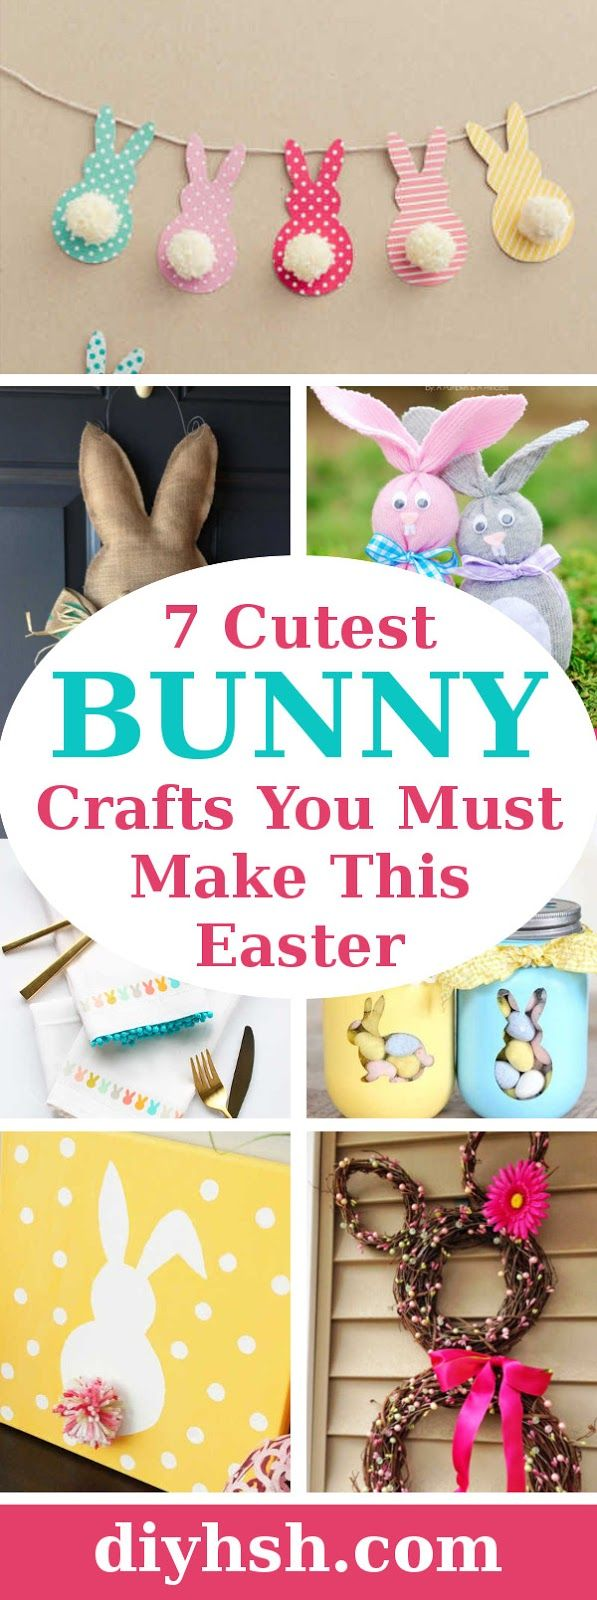 DIY Home Sweet Home: 7 Cutest Bunny Crafts You Must Make This Easter